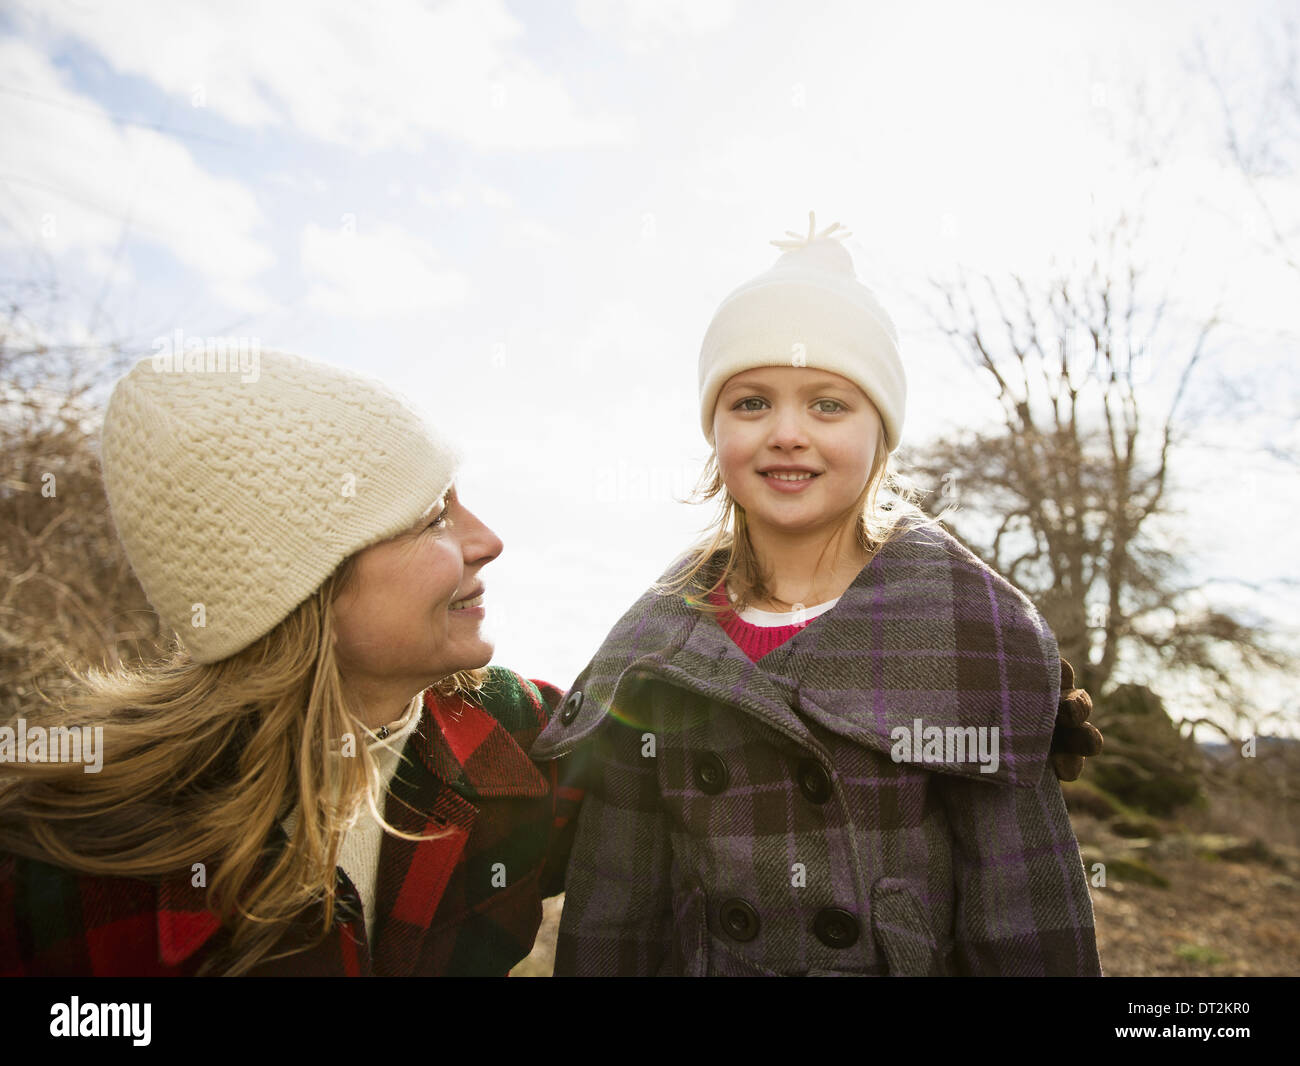 An Organic Farm in Winter in Cold Spring New York State A woman and child wrapped up against the cold weather - Stock Image